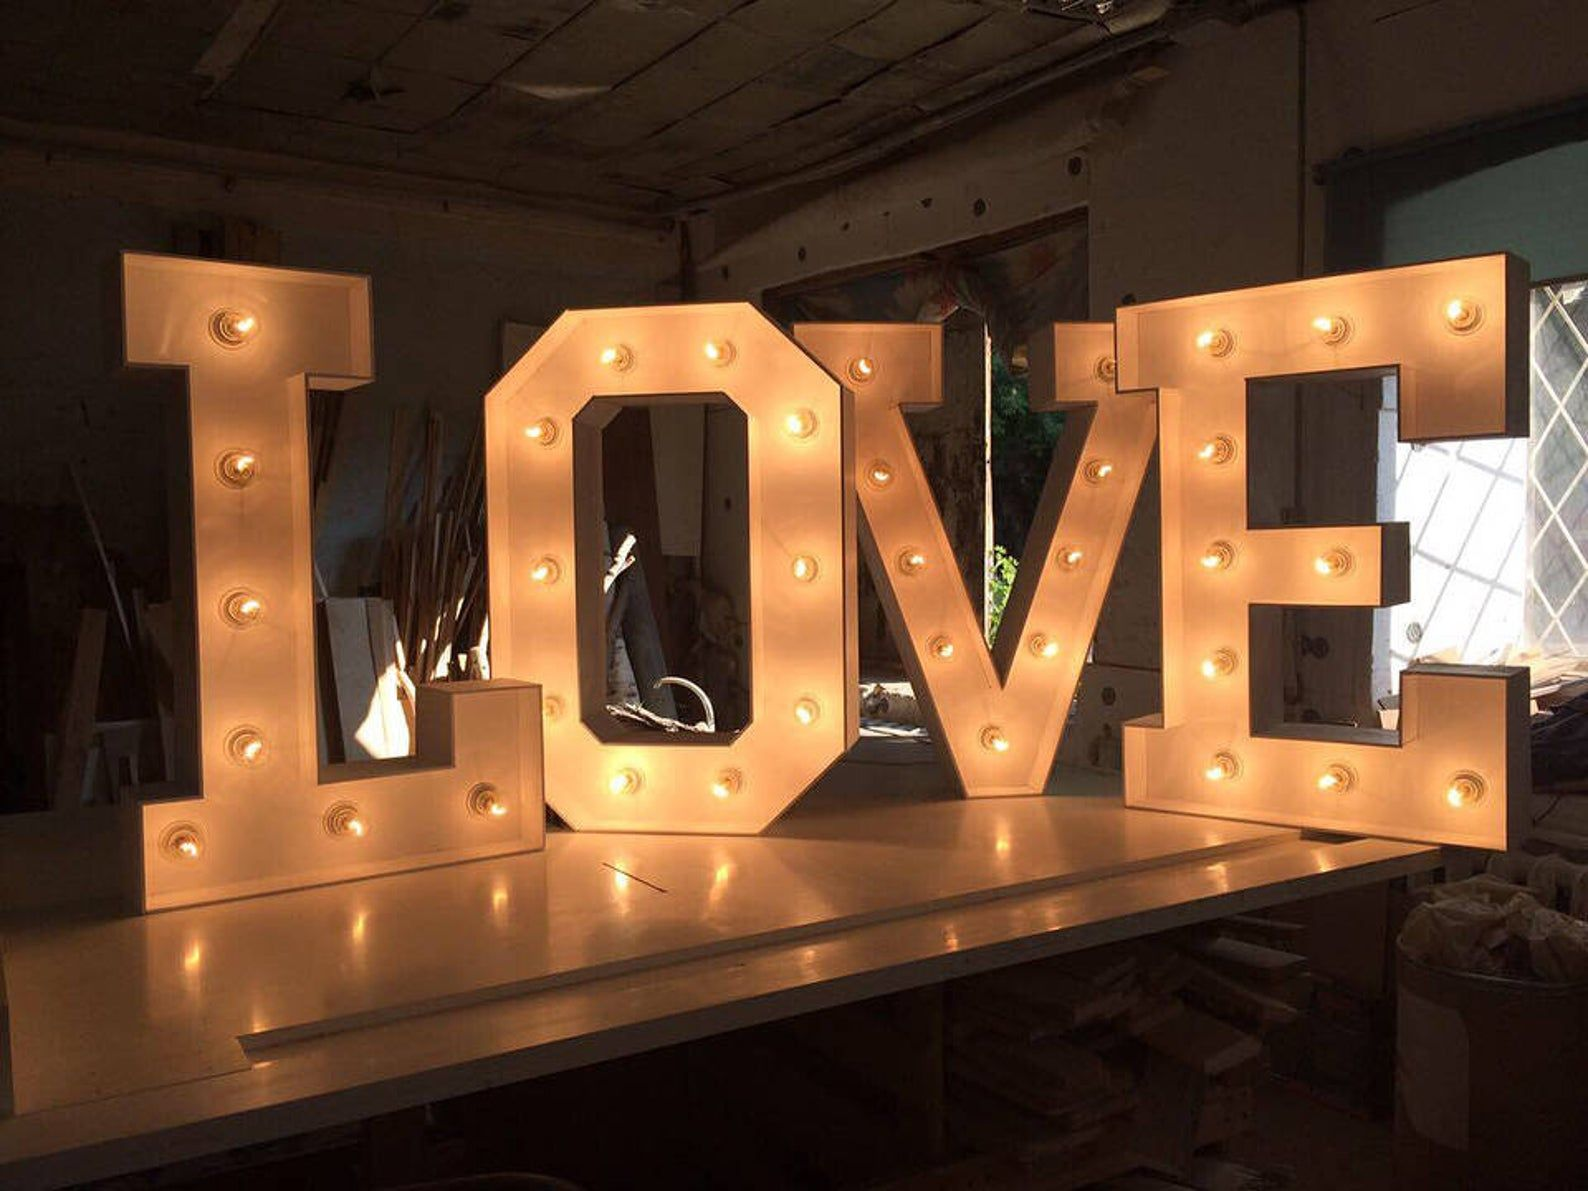 40 Inches Large Marquee Letter Light Up Letters Large Marquee Numbers Wedding Sign Light Up Sign Marquee Letter Lights Wooden Letter Light Letters Lighted Marquee Letters Light Up Letters